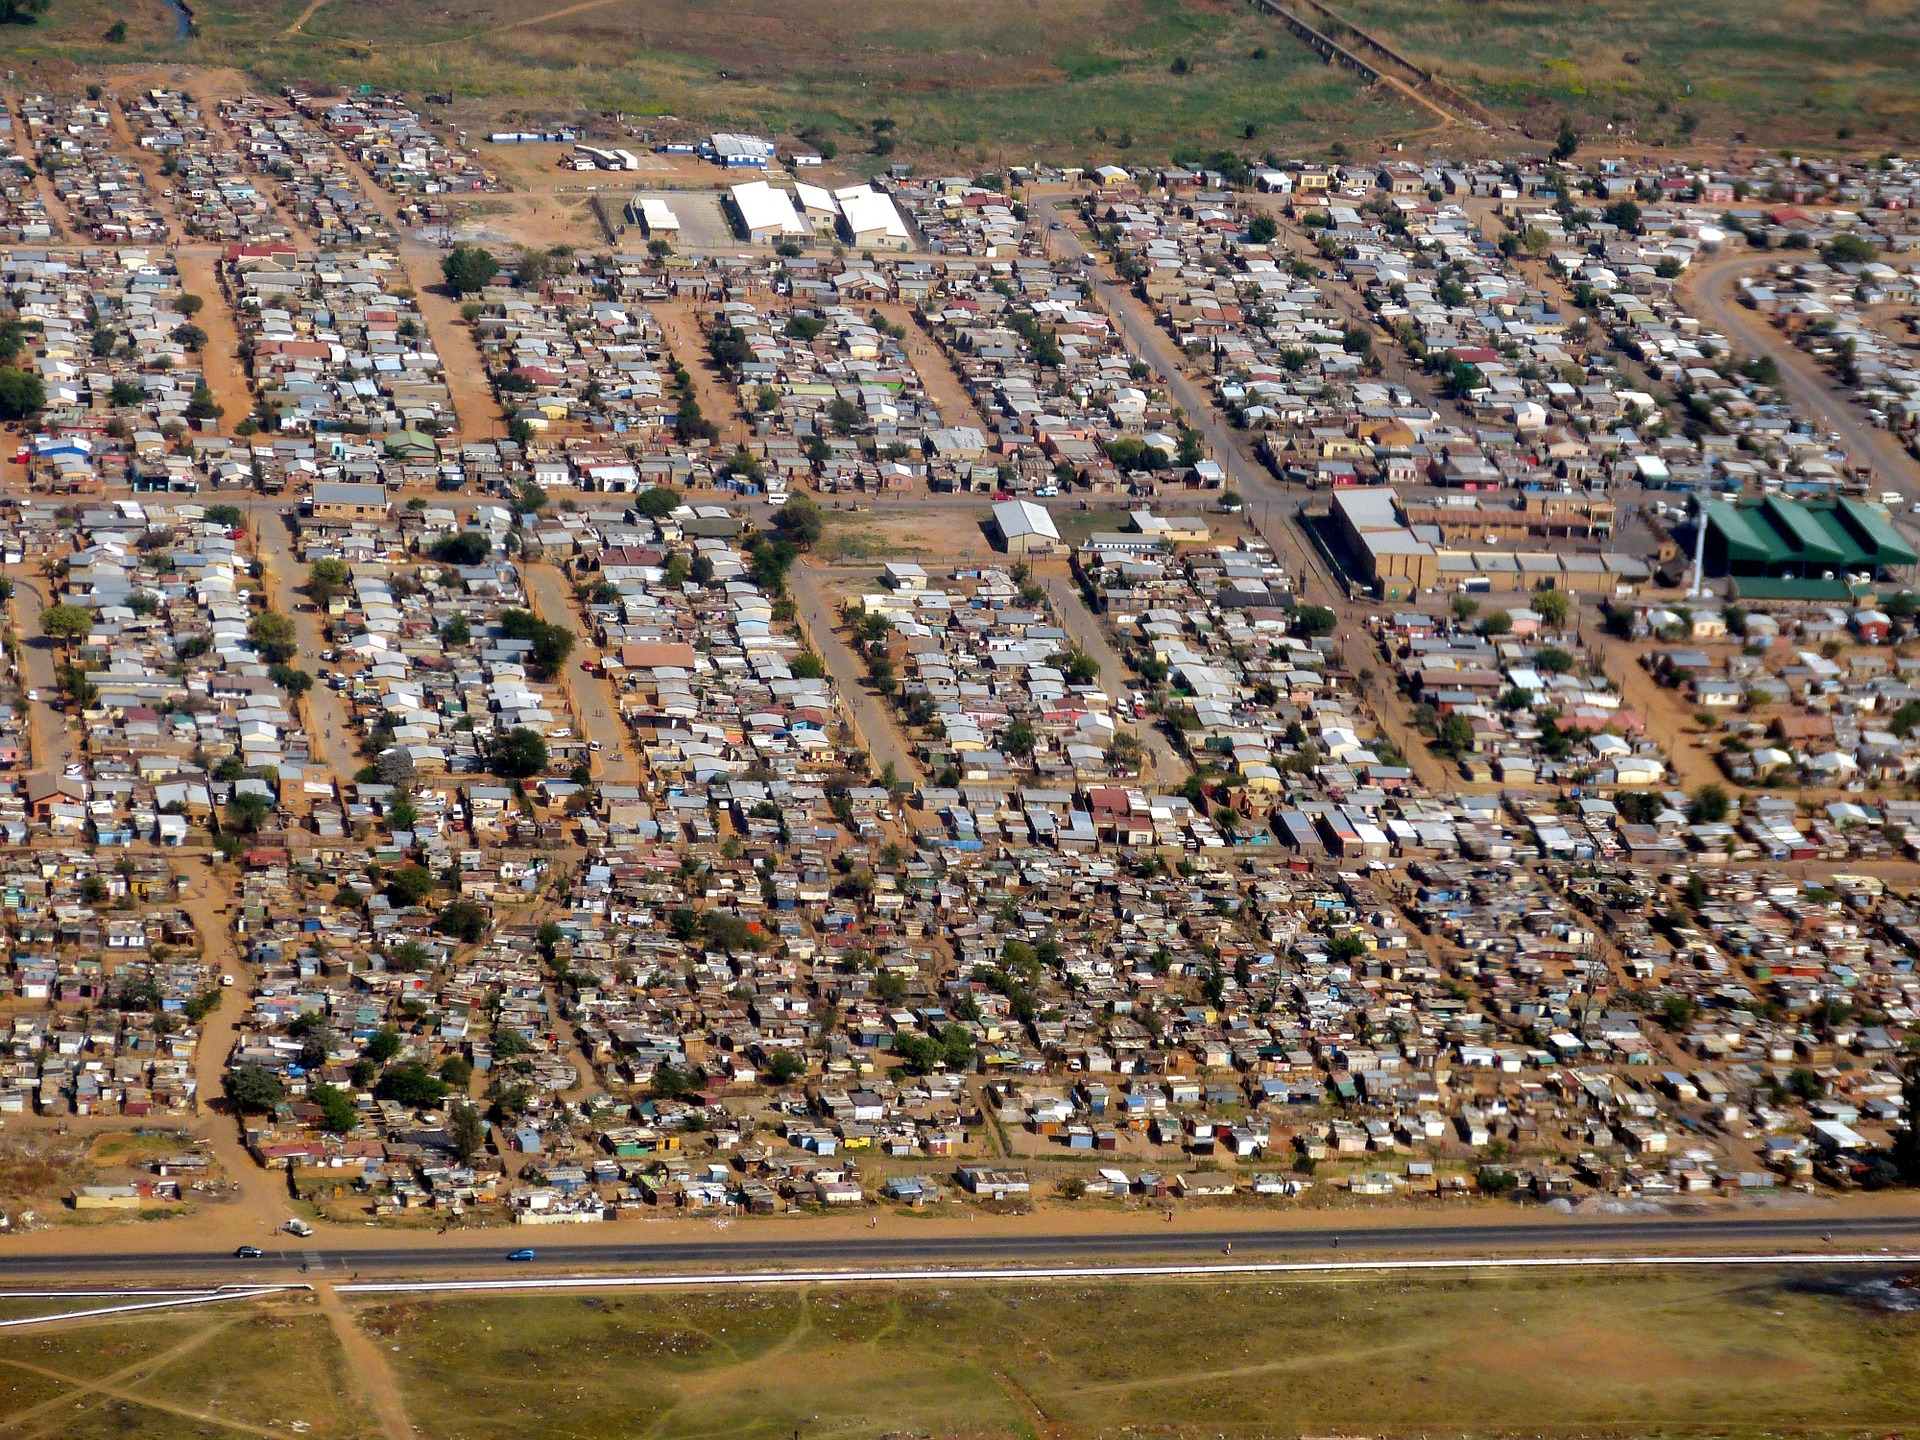 south-africa-1112770_1920